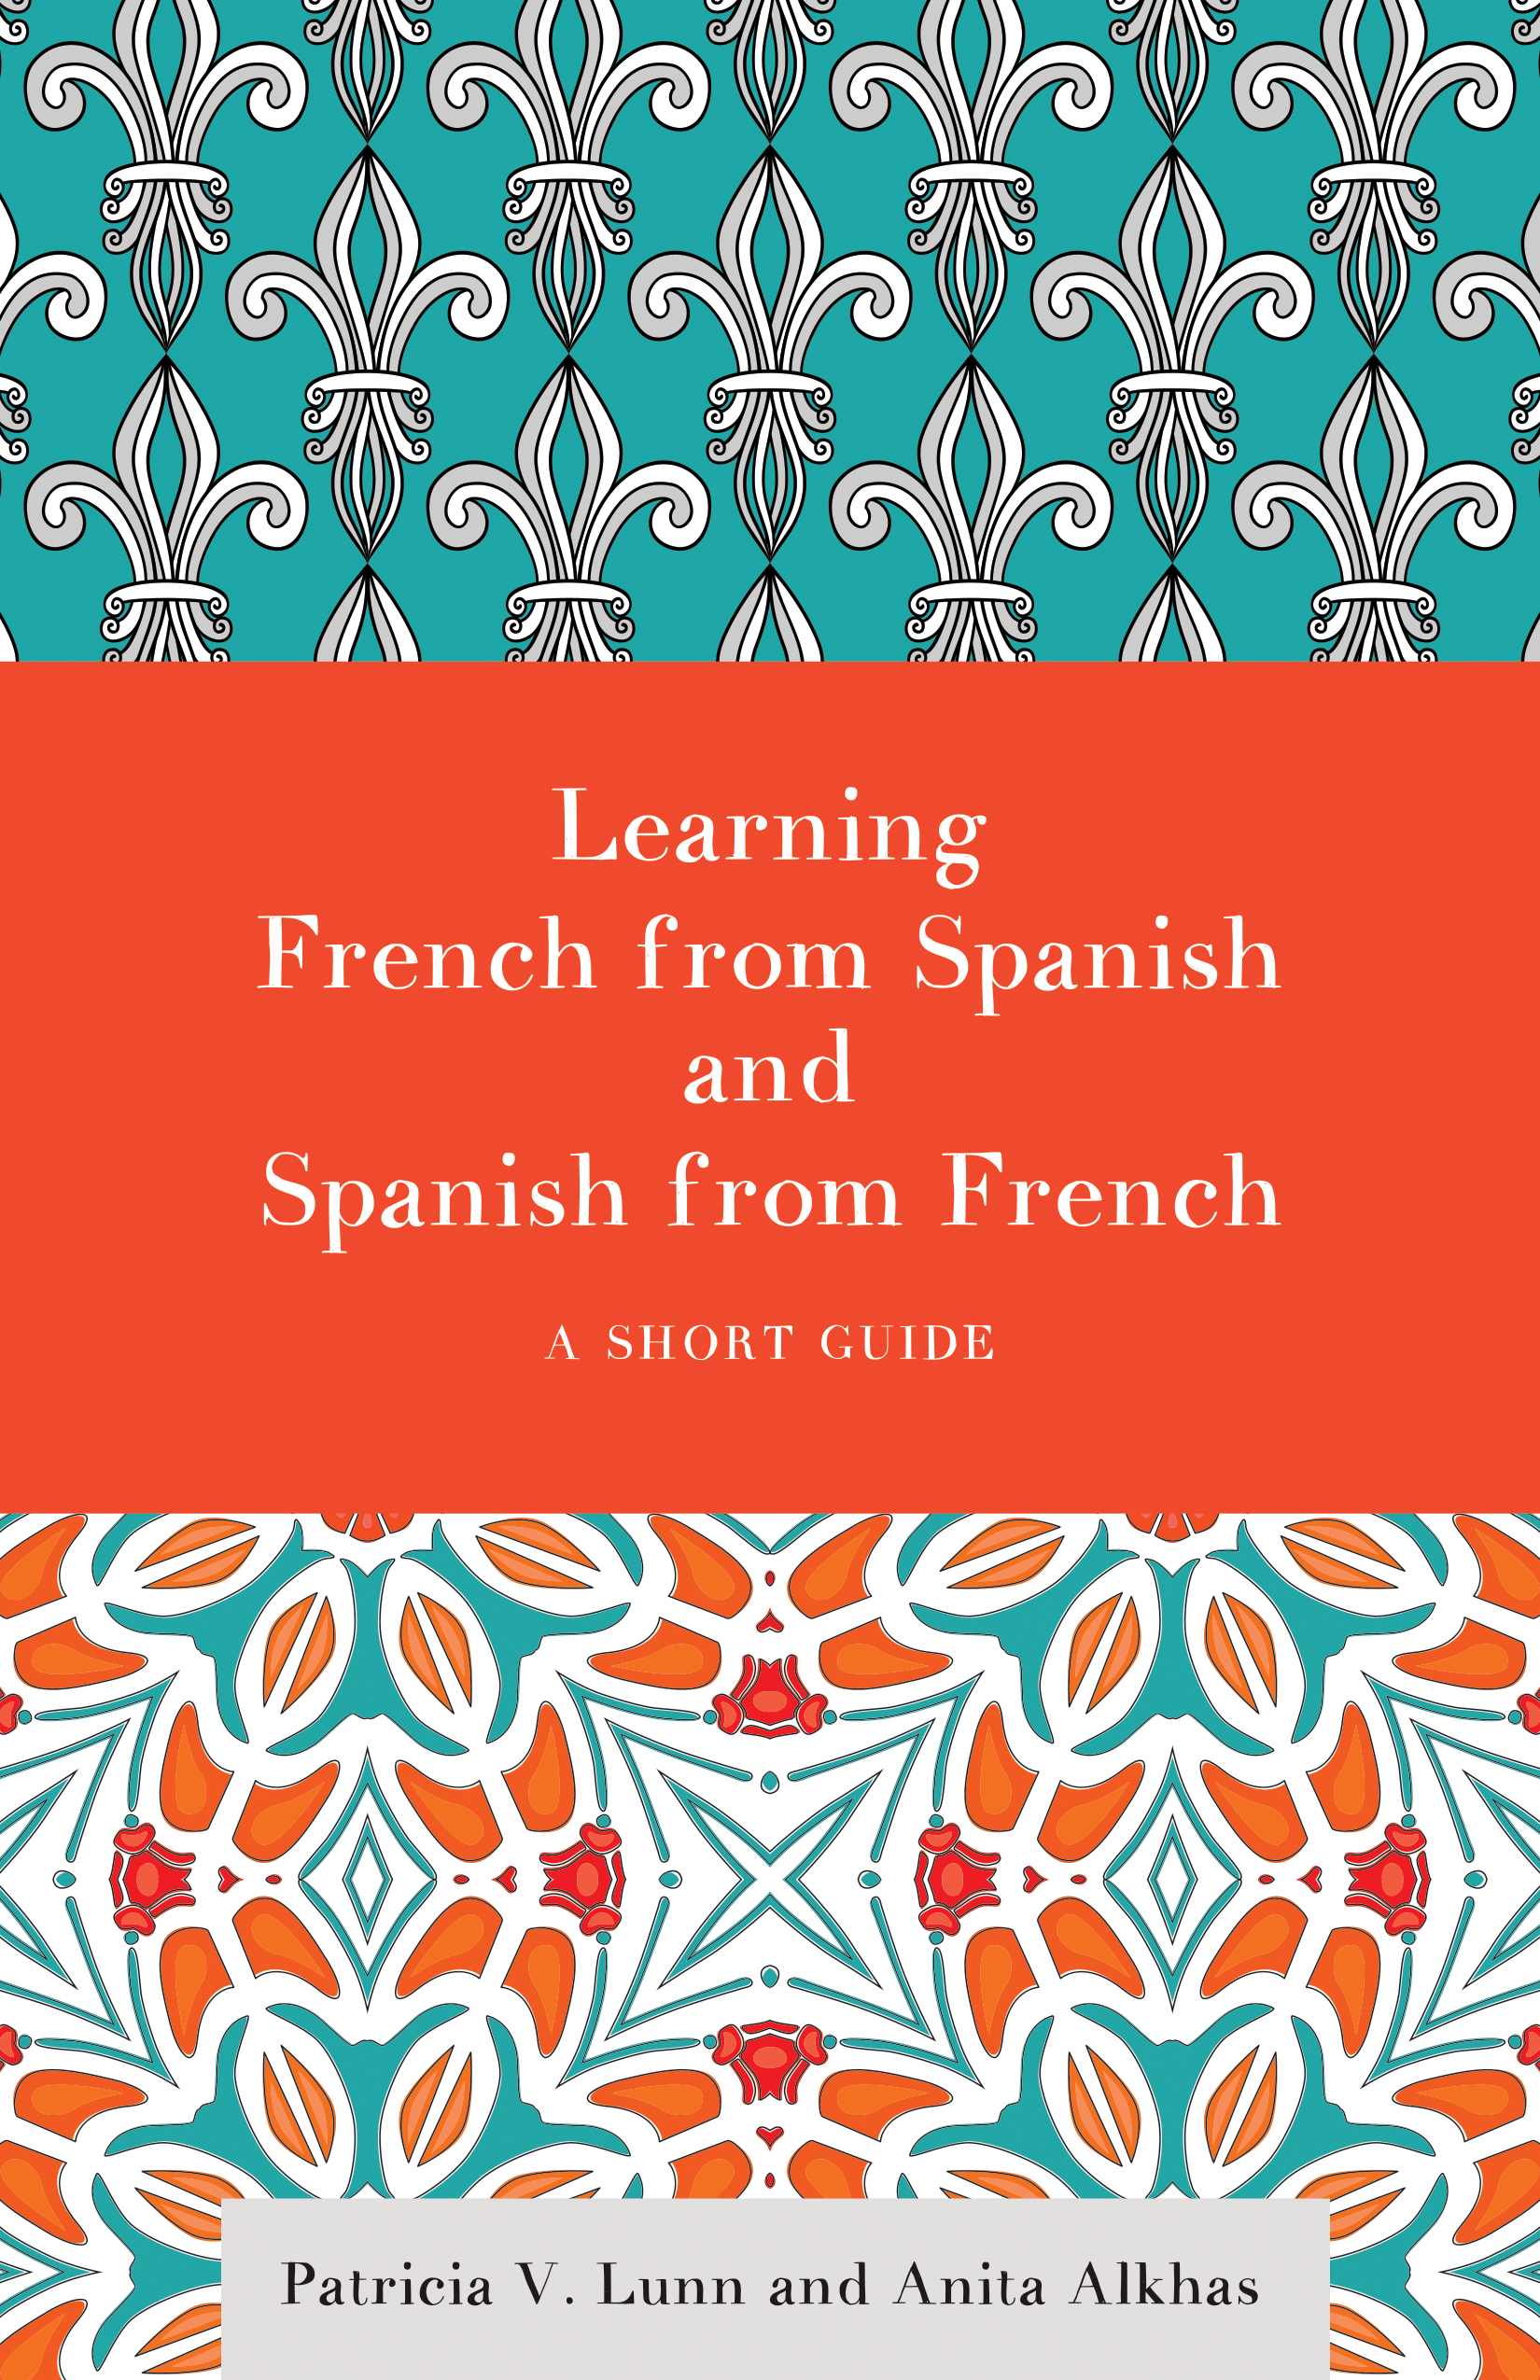 Learning French from Spanish and Spanish from French